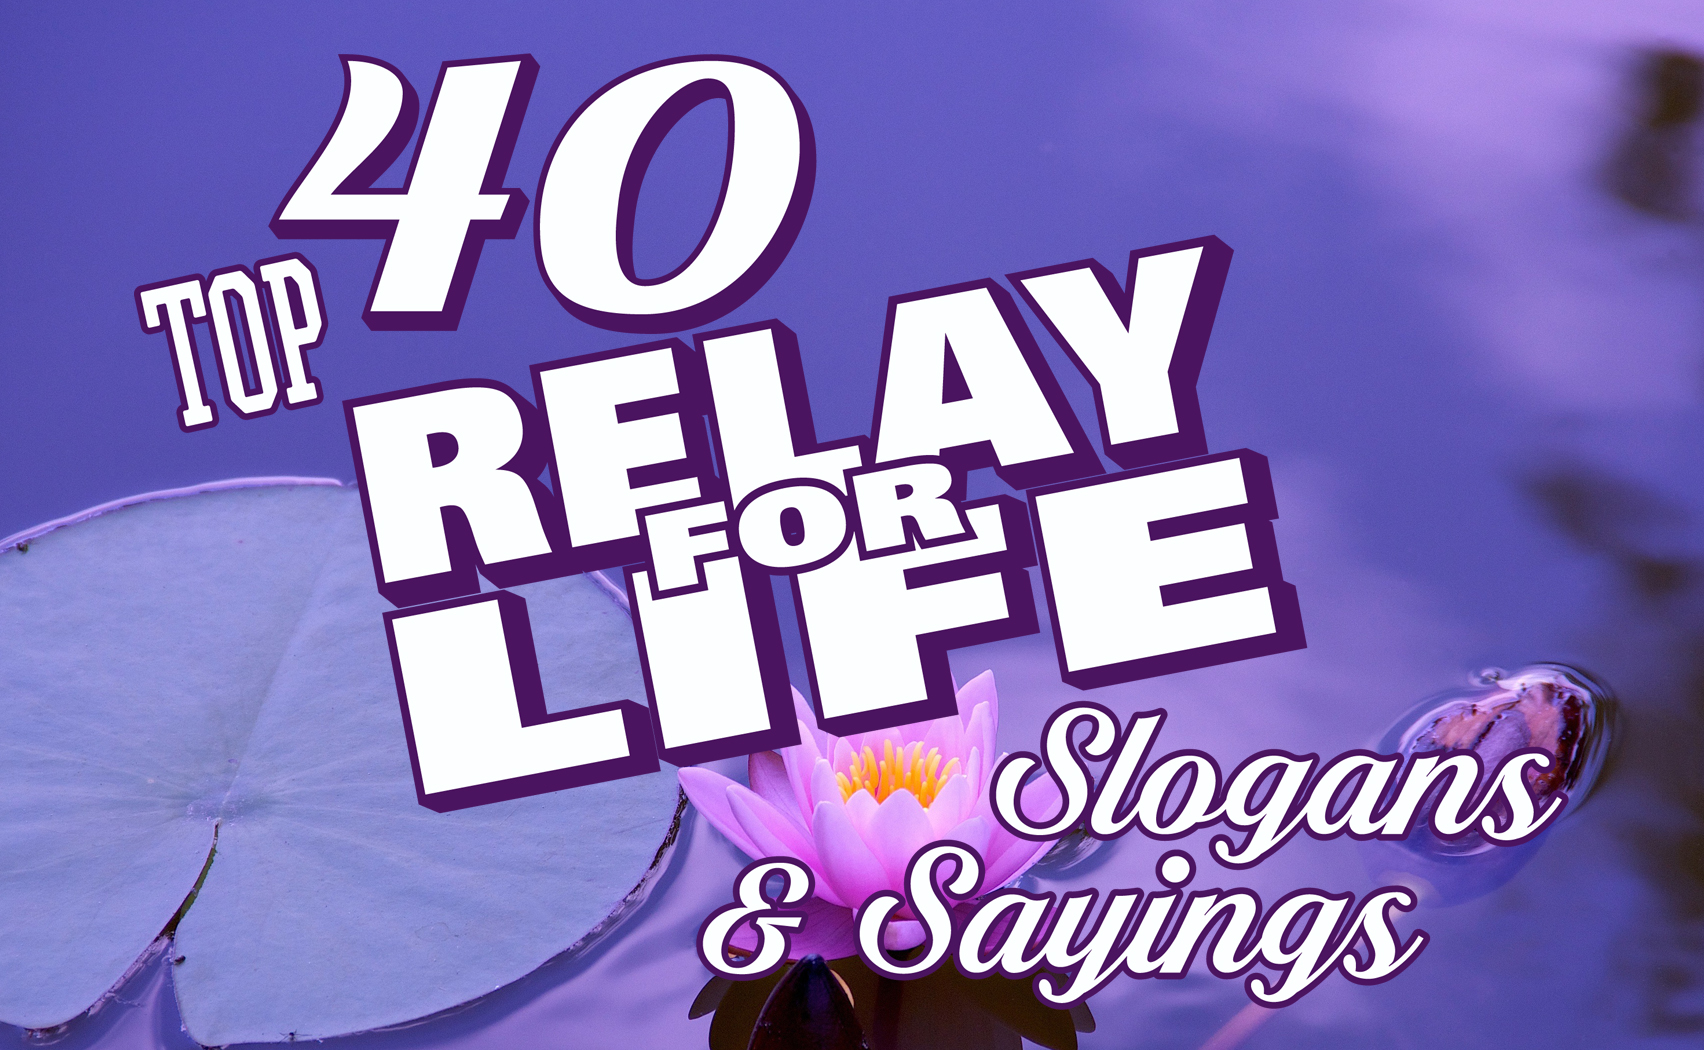 Relay For Life Quotes Iza Design Blogtop 40 Relay For Life Slogans And Sayings